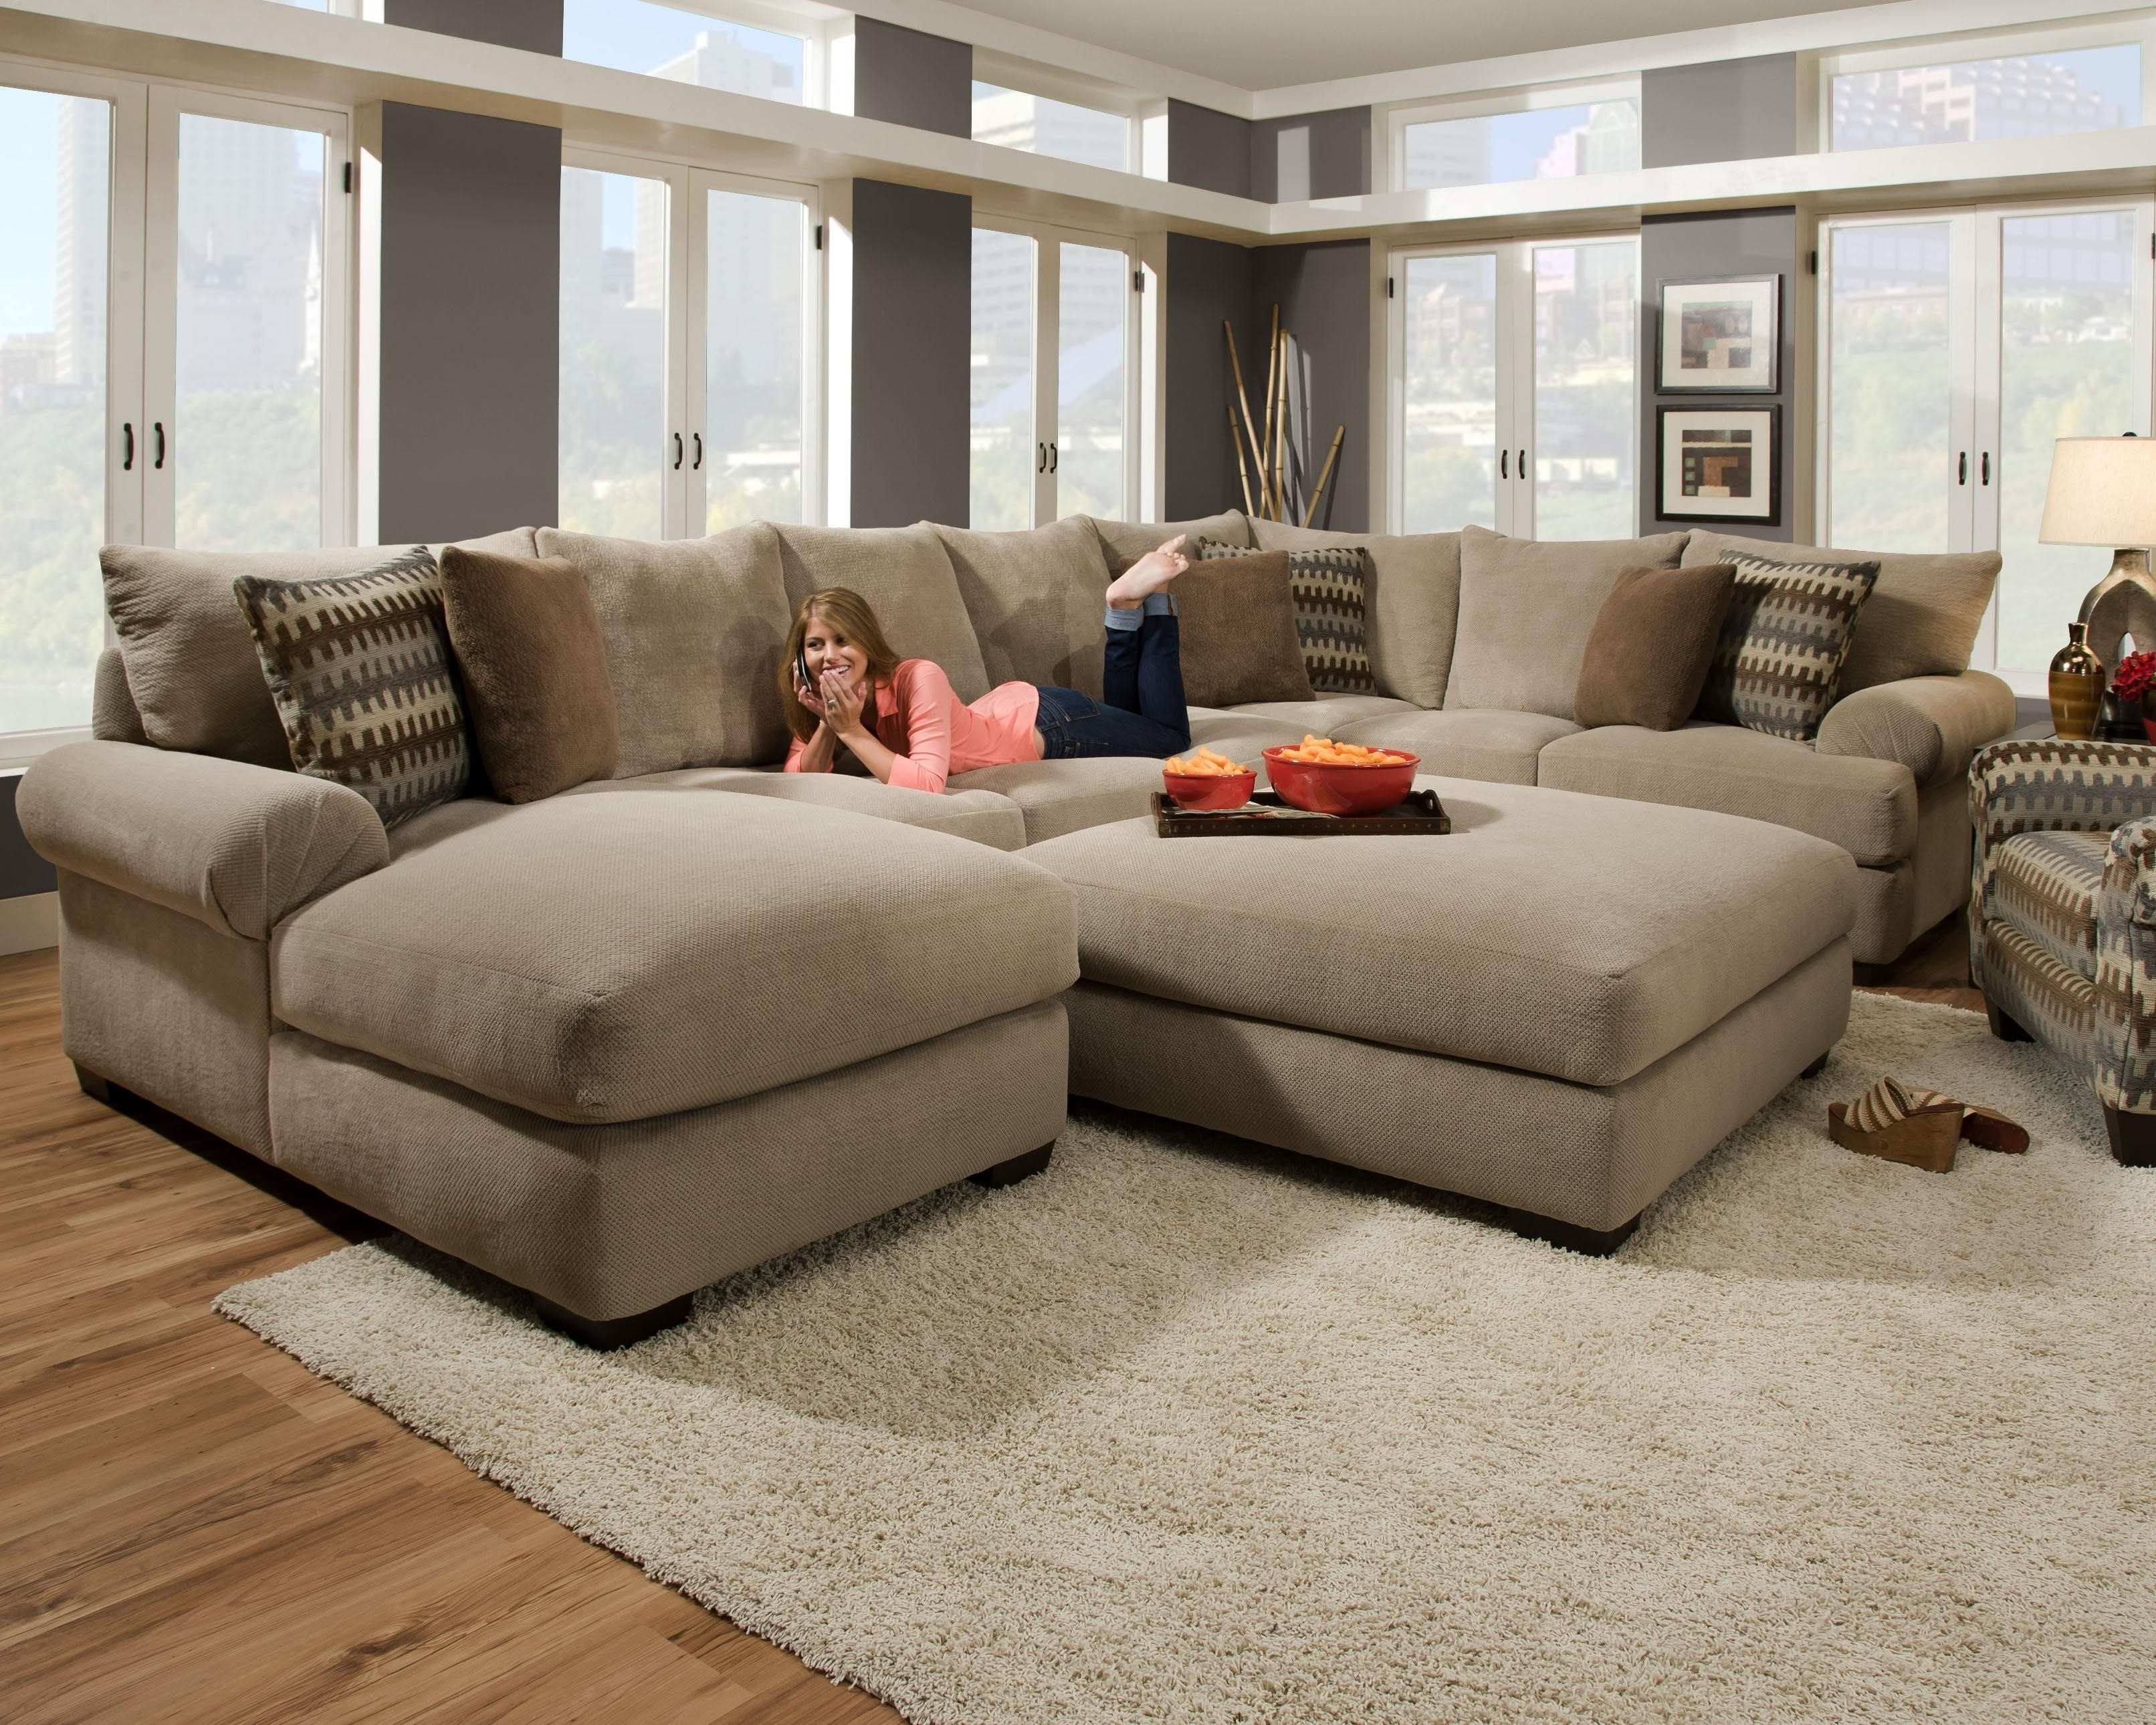 Incredible Modern Sectional Sofas Vancouver – Buildsimplehome Regarding 2017 Vancouver Sectional Sofas (View 4 of 15)